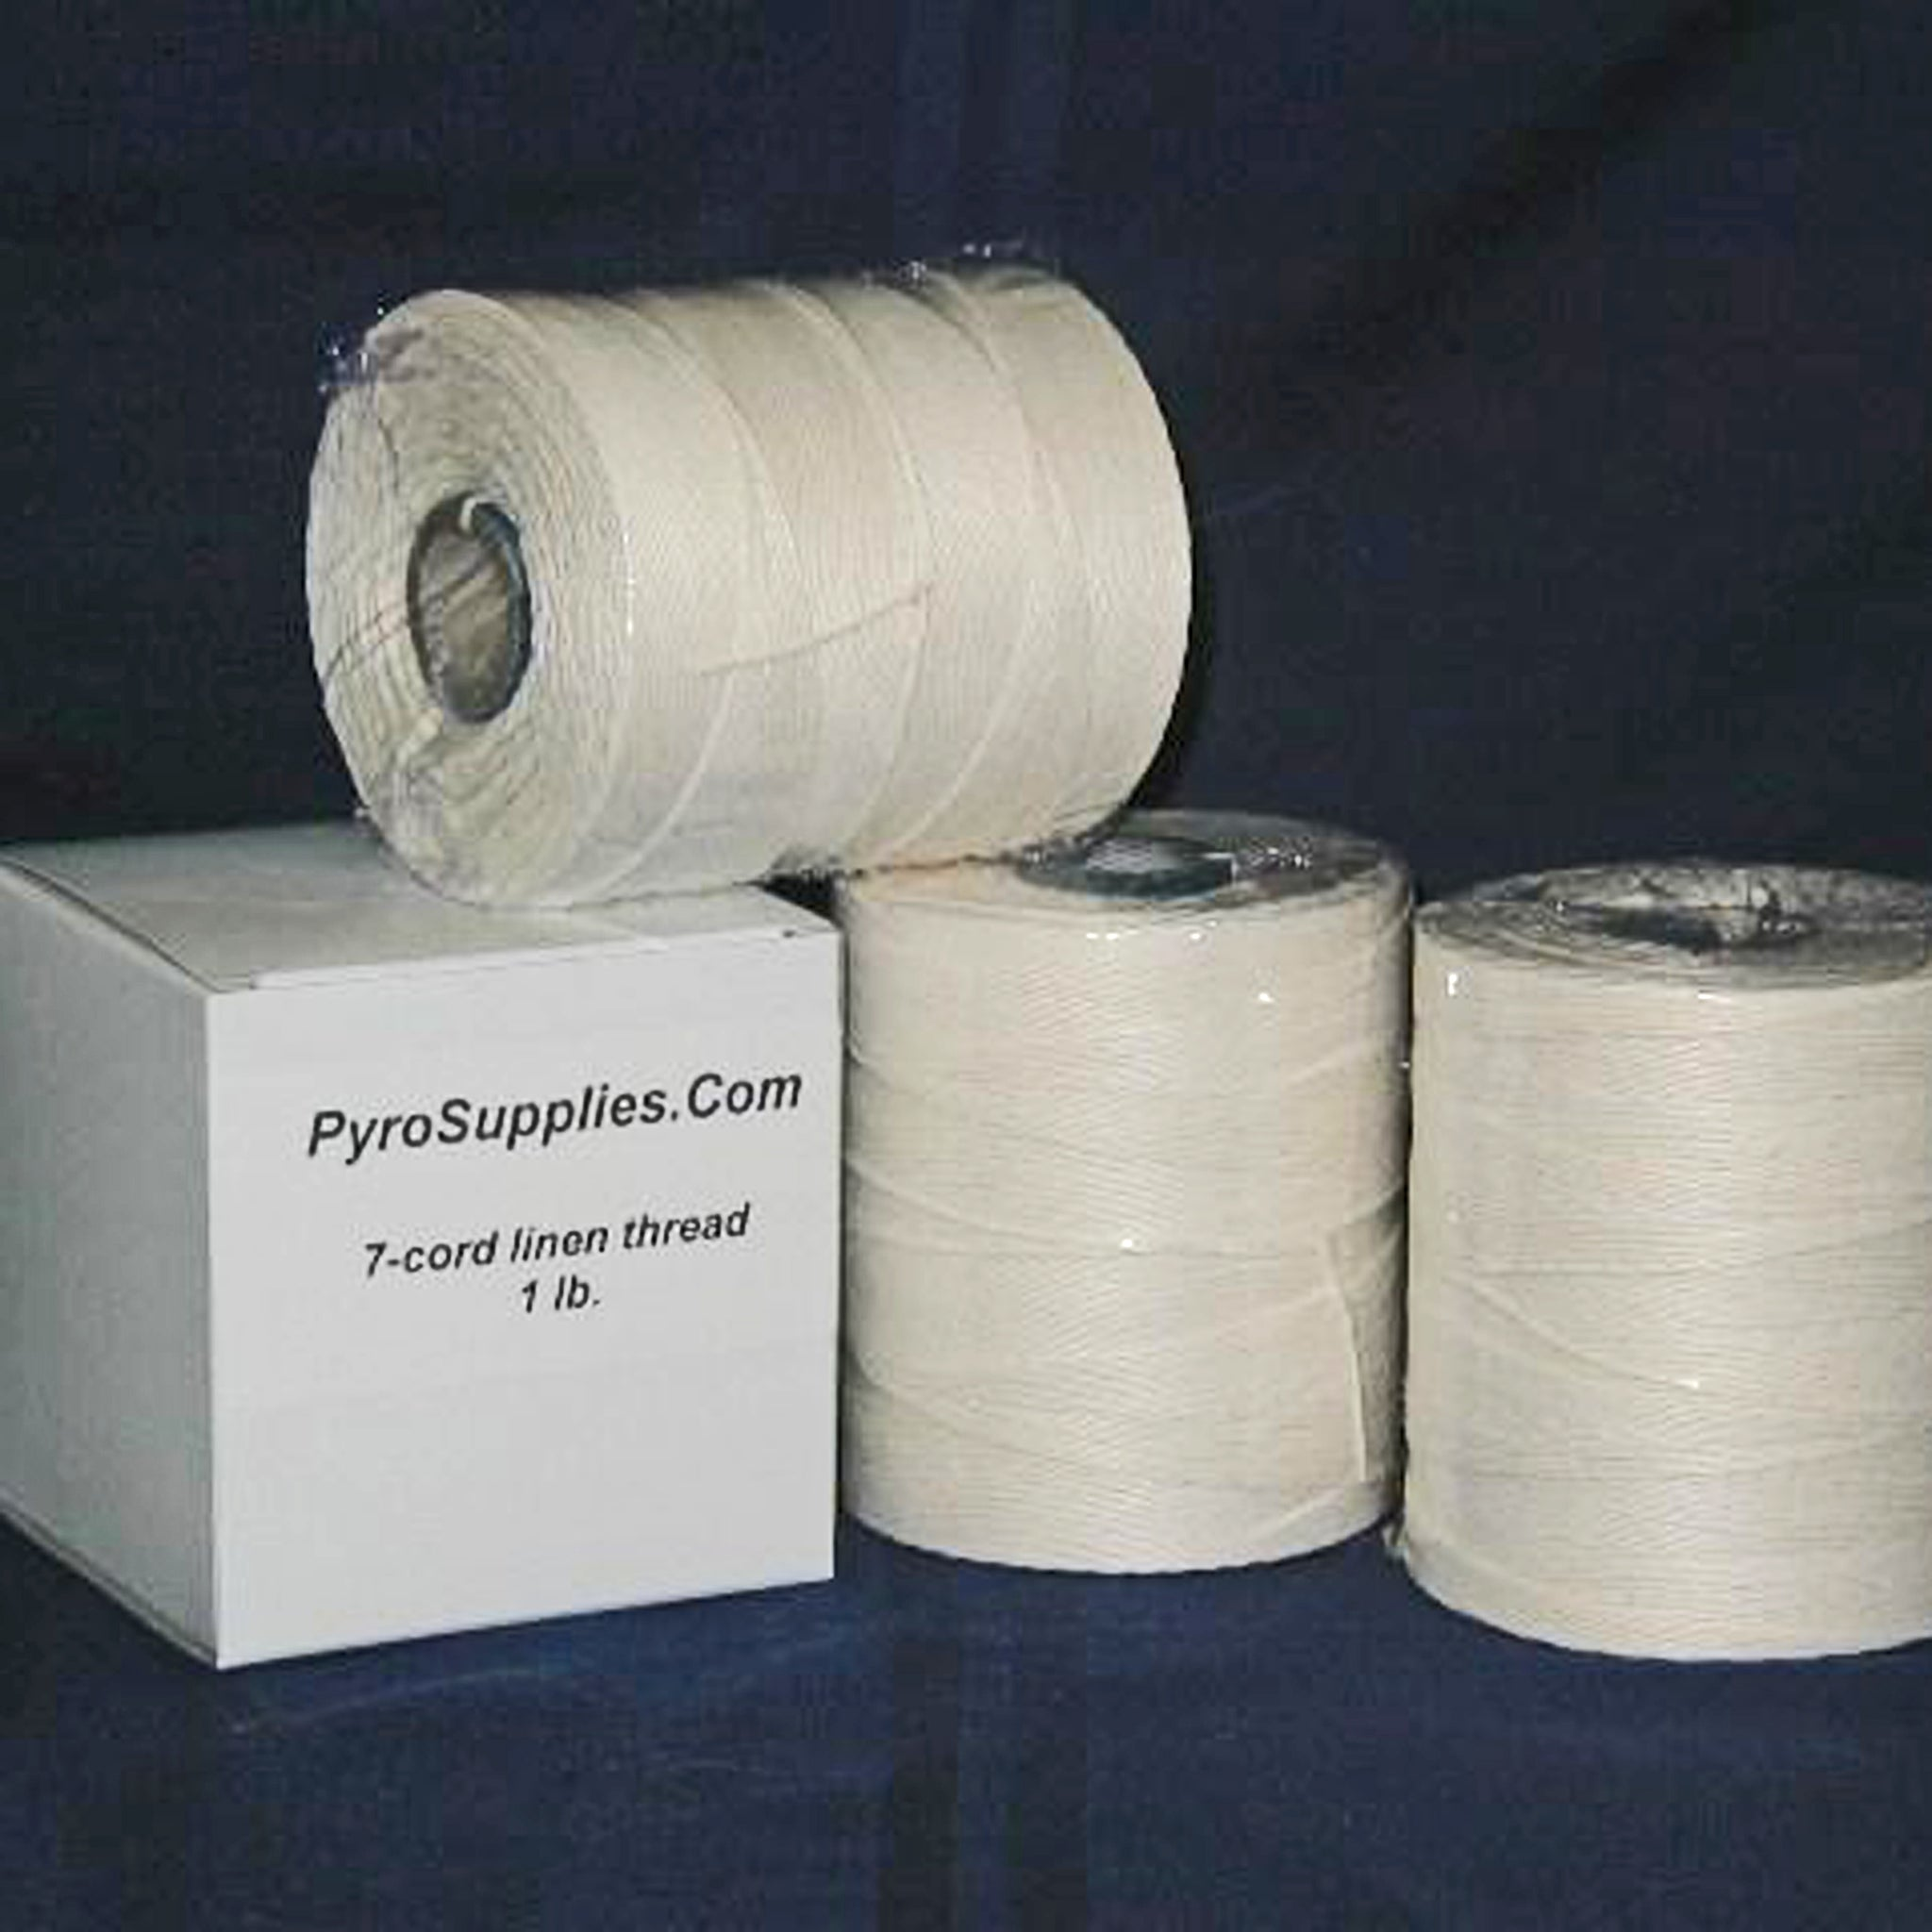 Imported Linen Flax Twine - 4, 5, 6, or 7 Cord - Case of 24 Spools